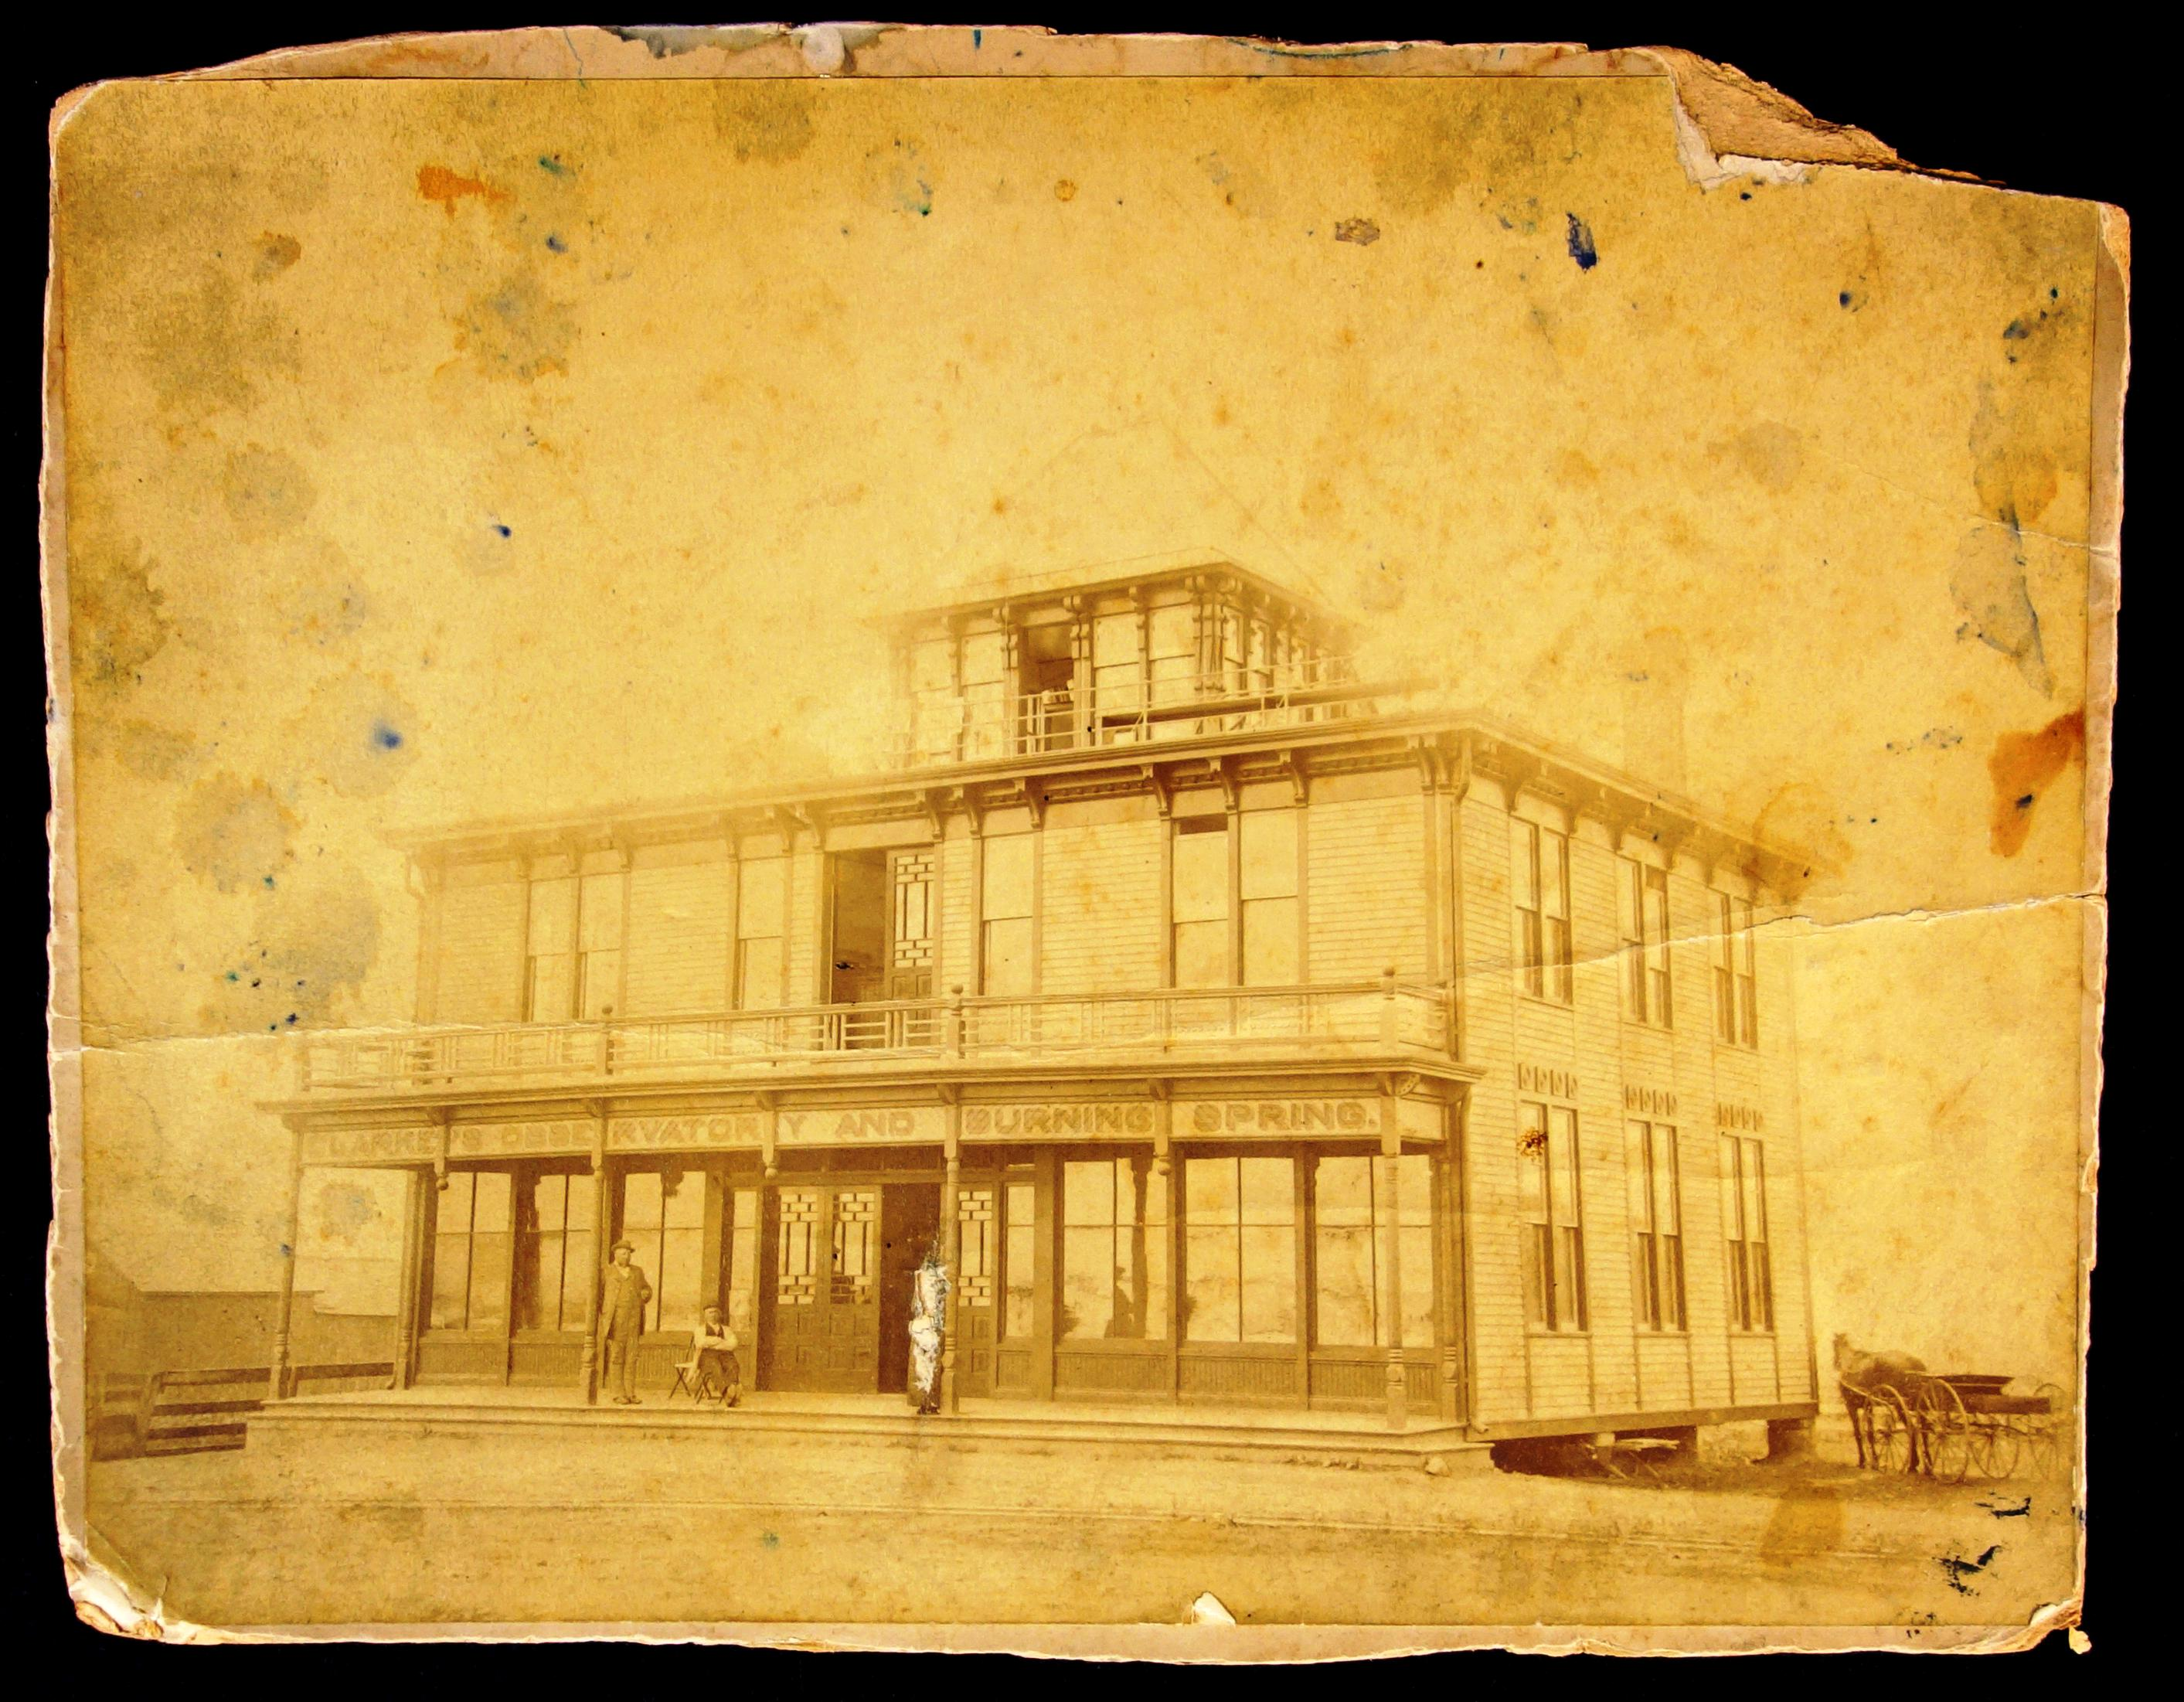 Clarke's Observatory and Burning Spring. Sepia toned image with an Italiante featured three-storey building, three men standing in the front, one has been scratched out via trauma. The image is in poor condition, tattered edges and spots.  There is a porch which surrounds the ground floor front. The doors have intricate patterns. The second  story has a veranda with windows and a door with the same design. The third level is a cupola from which the observing of the Niagara River can occur.